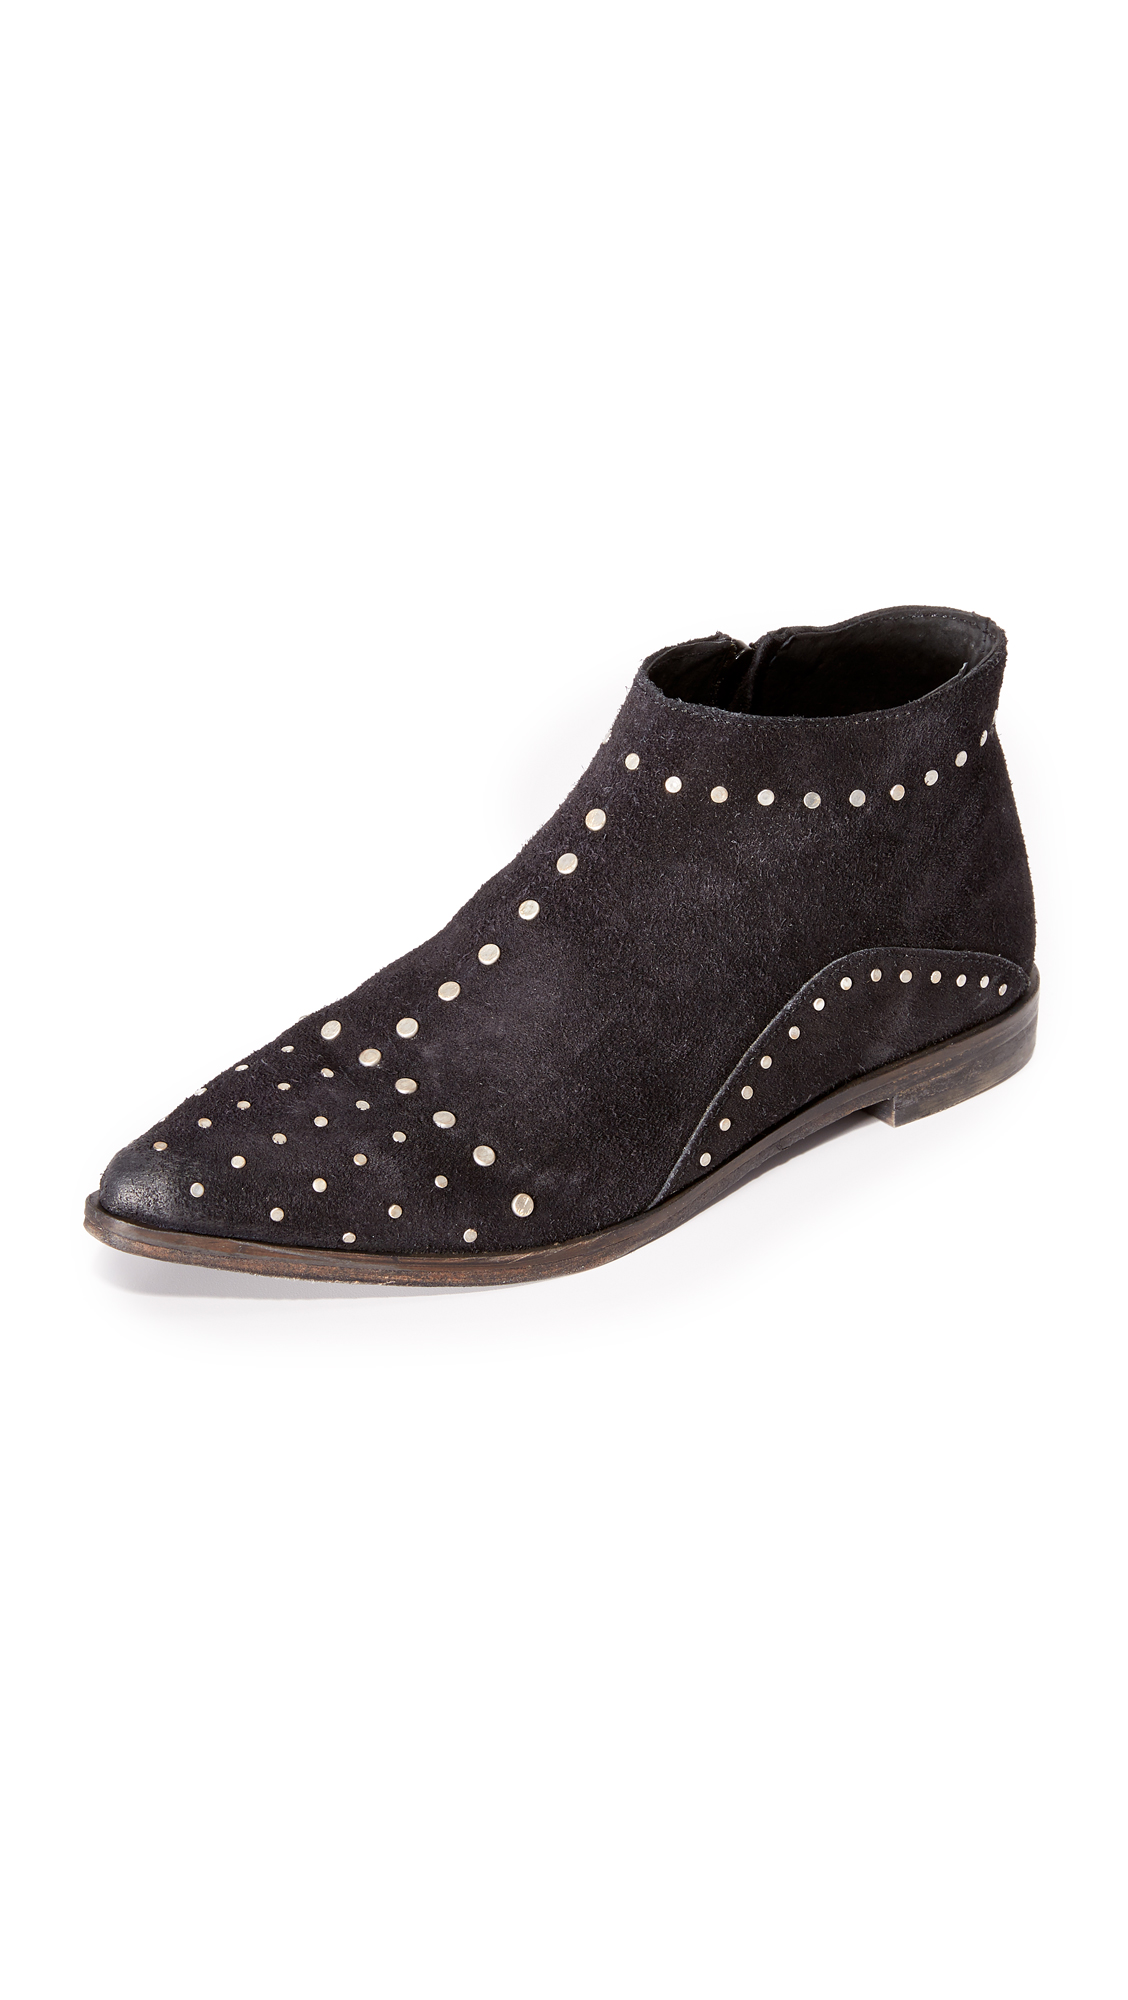 Free People Aquarian Studded Ankle Booties - Black